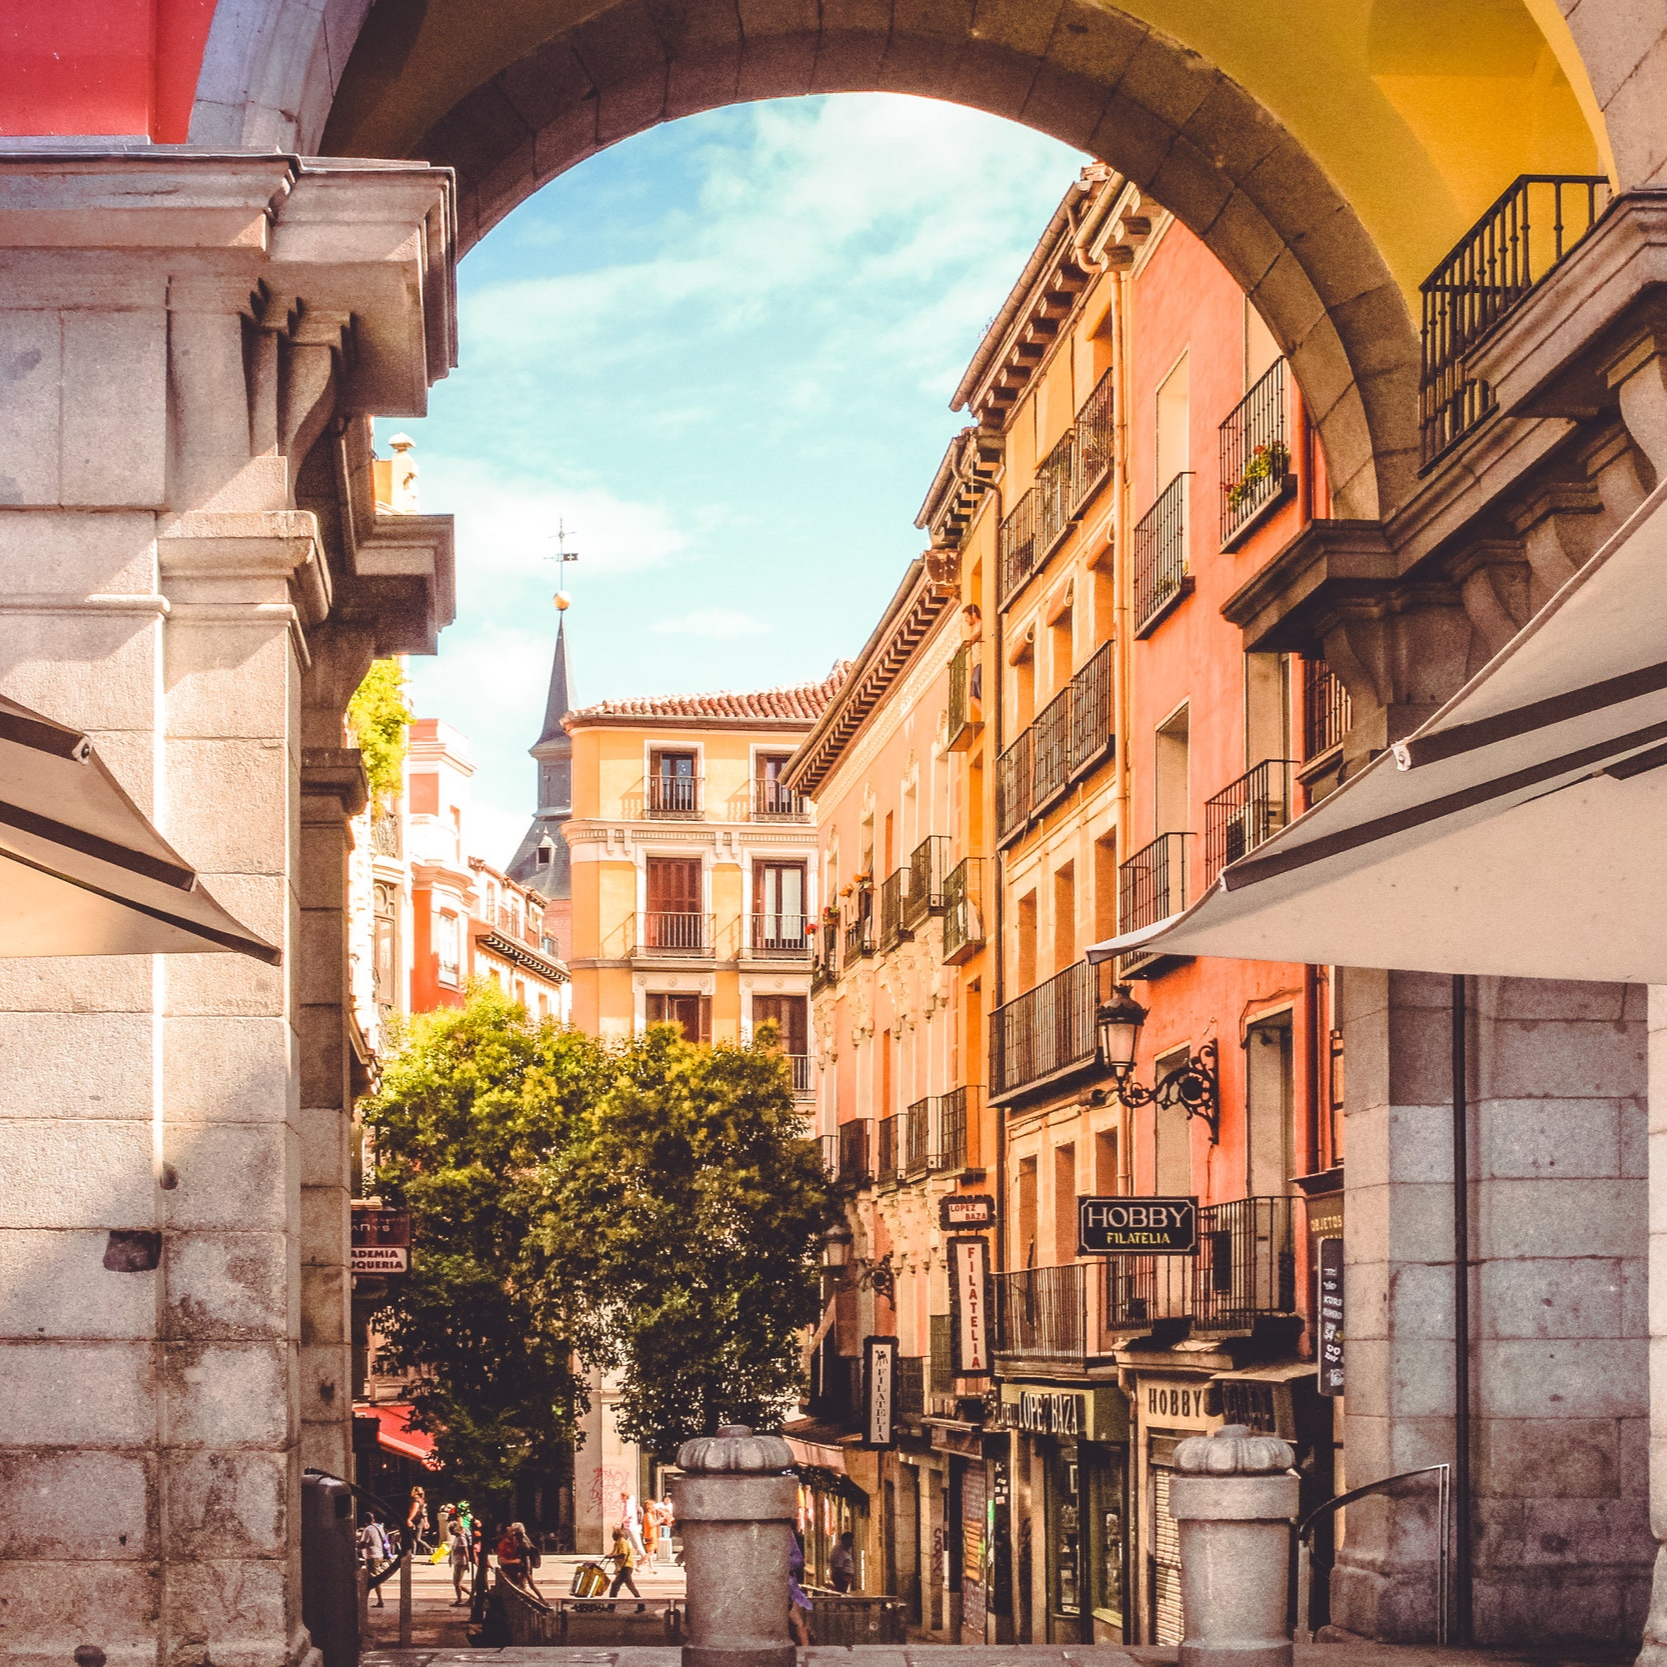 Travelling to Spain with Food Allergies   From Lindsay, Adults with Food Allergies